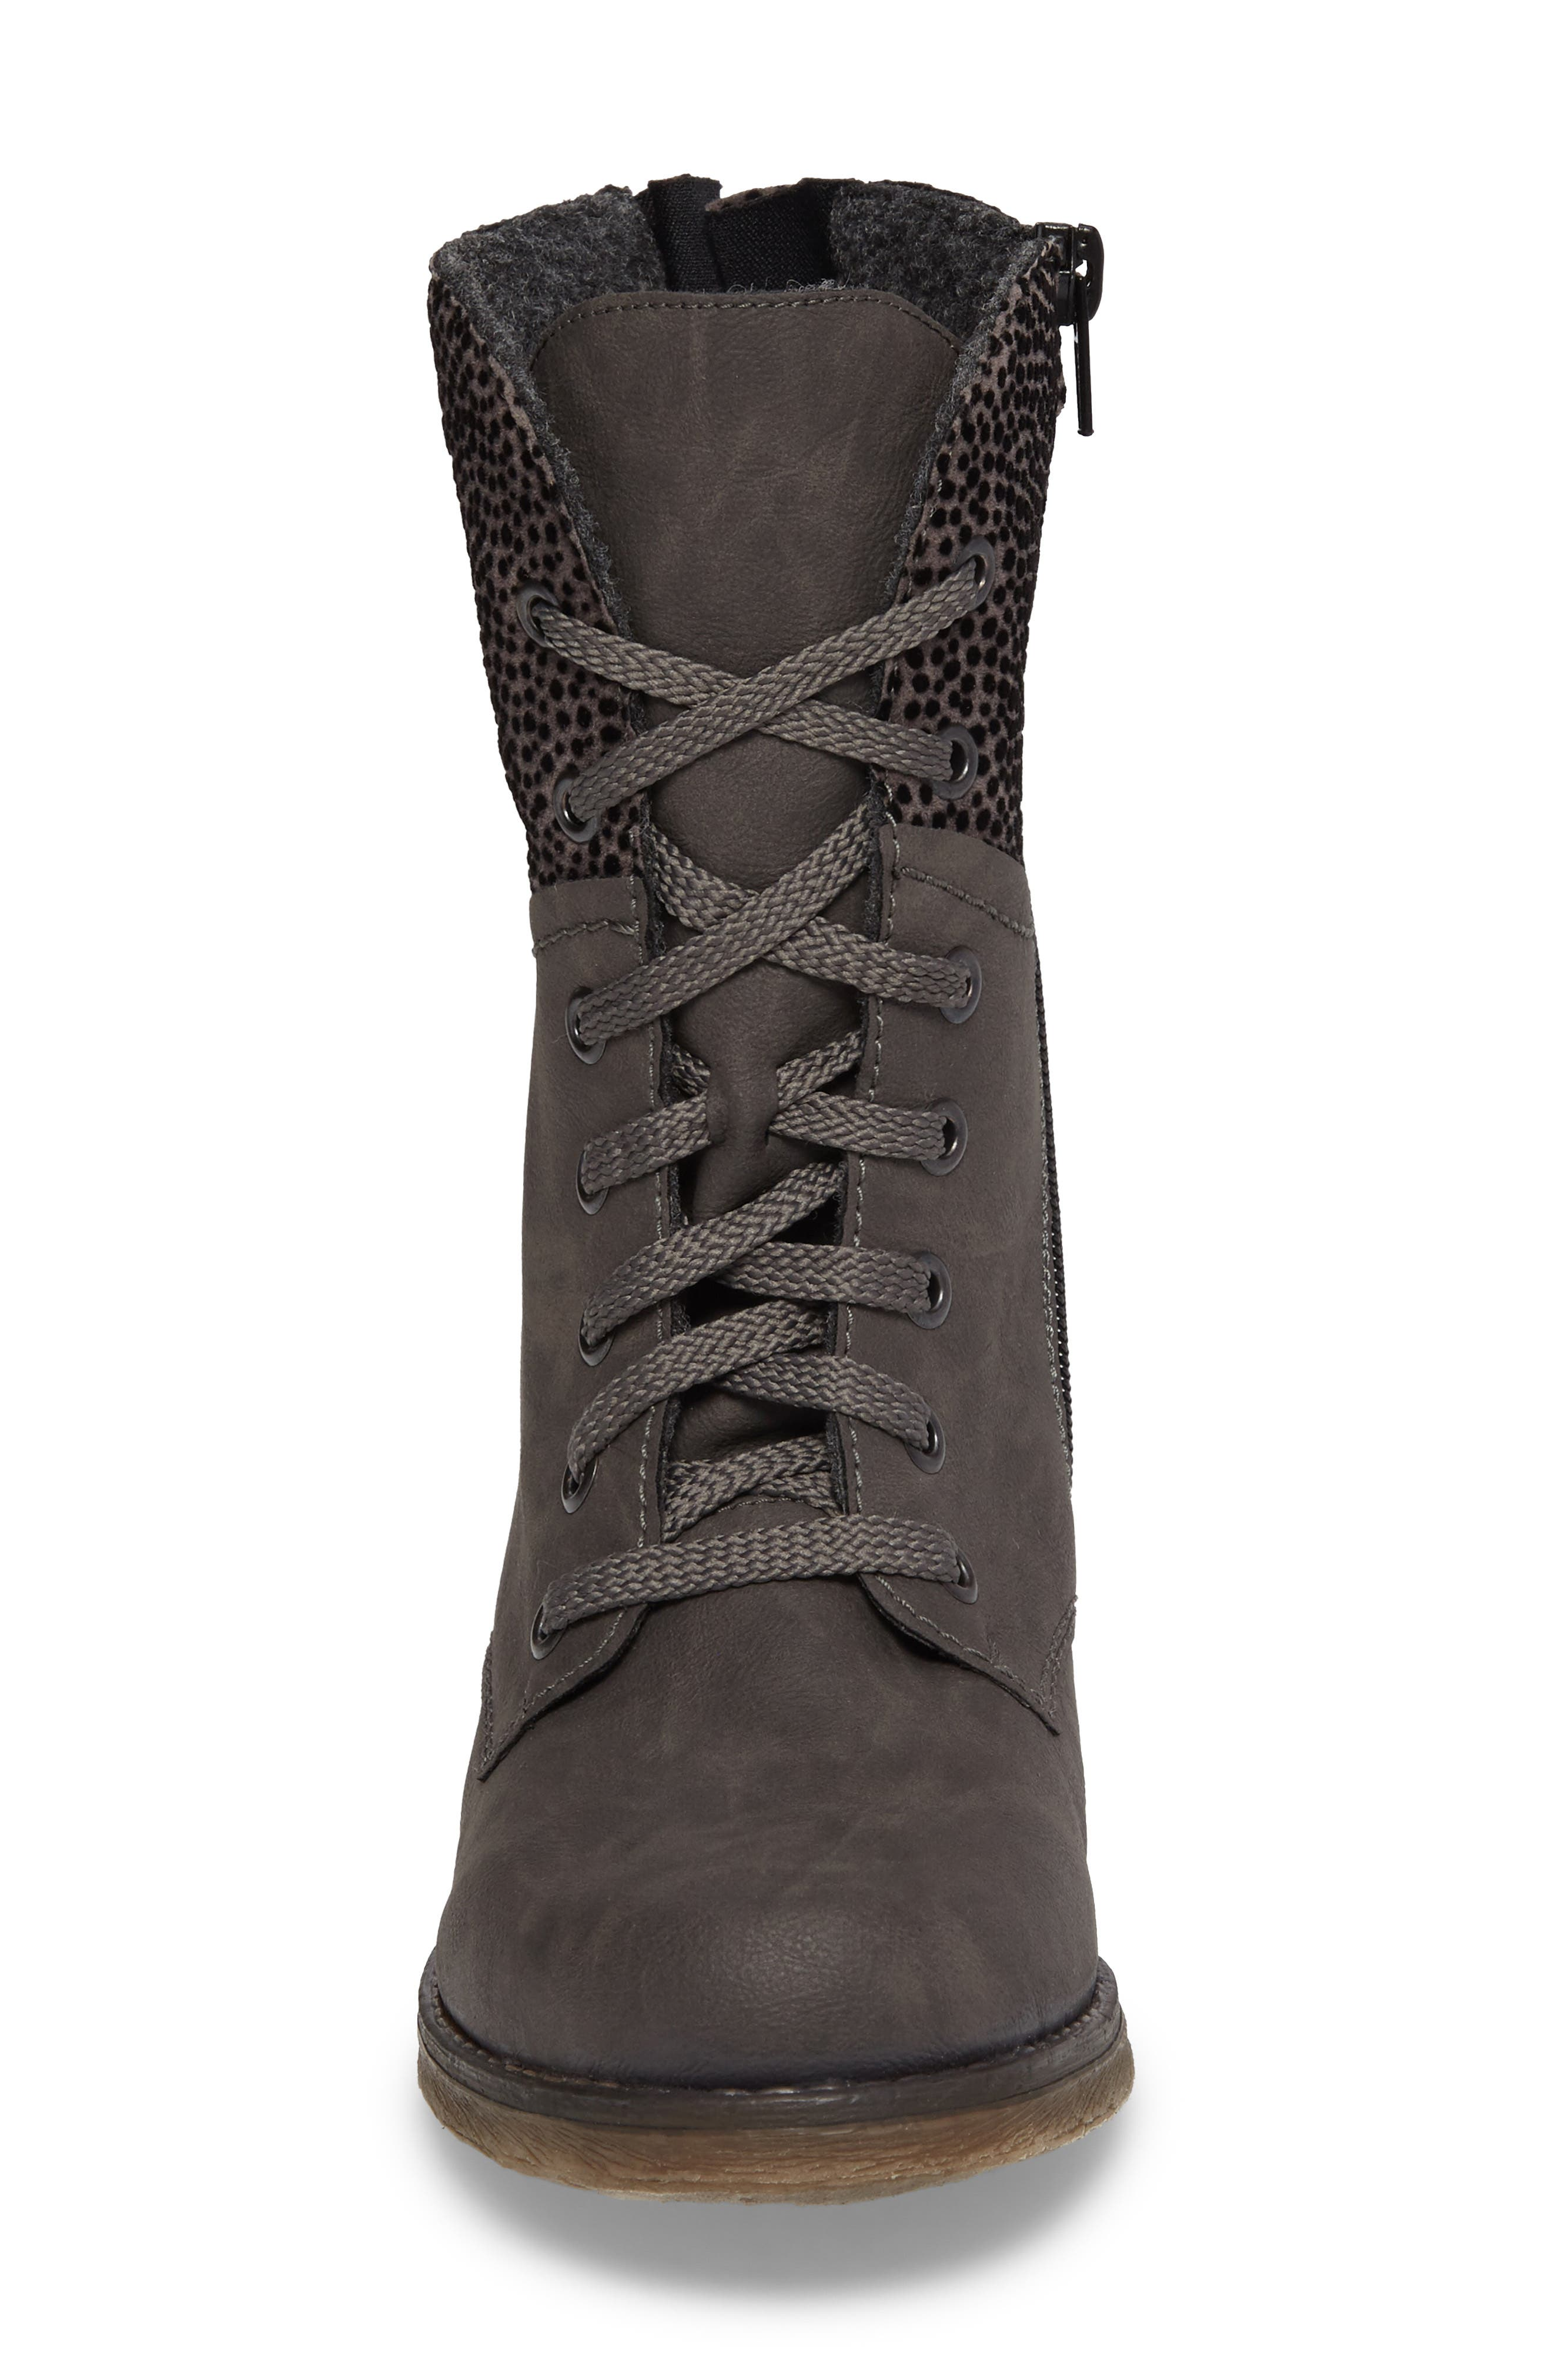 'Fee 04' Lace-Up Boot,                             Alternate thumbnail 4, color,                             FUMO FAUX LEATHER